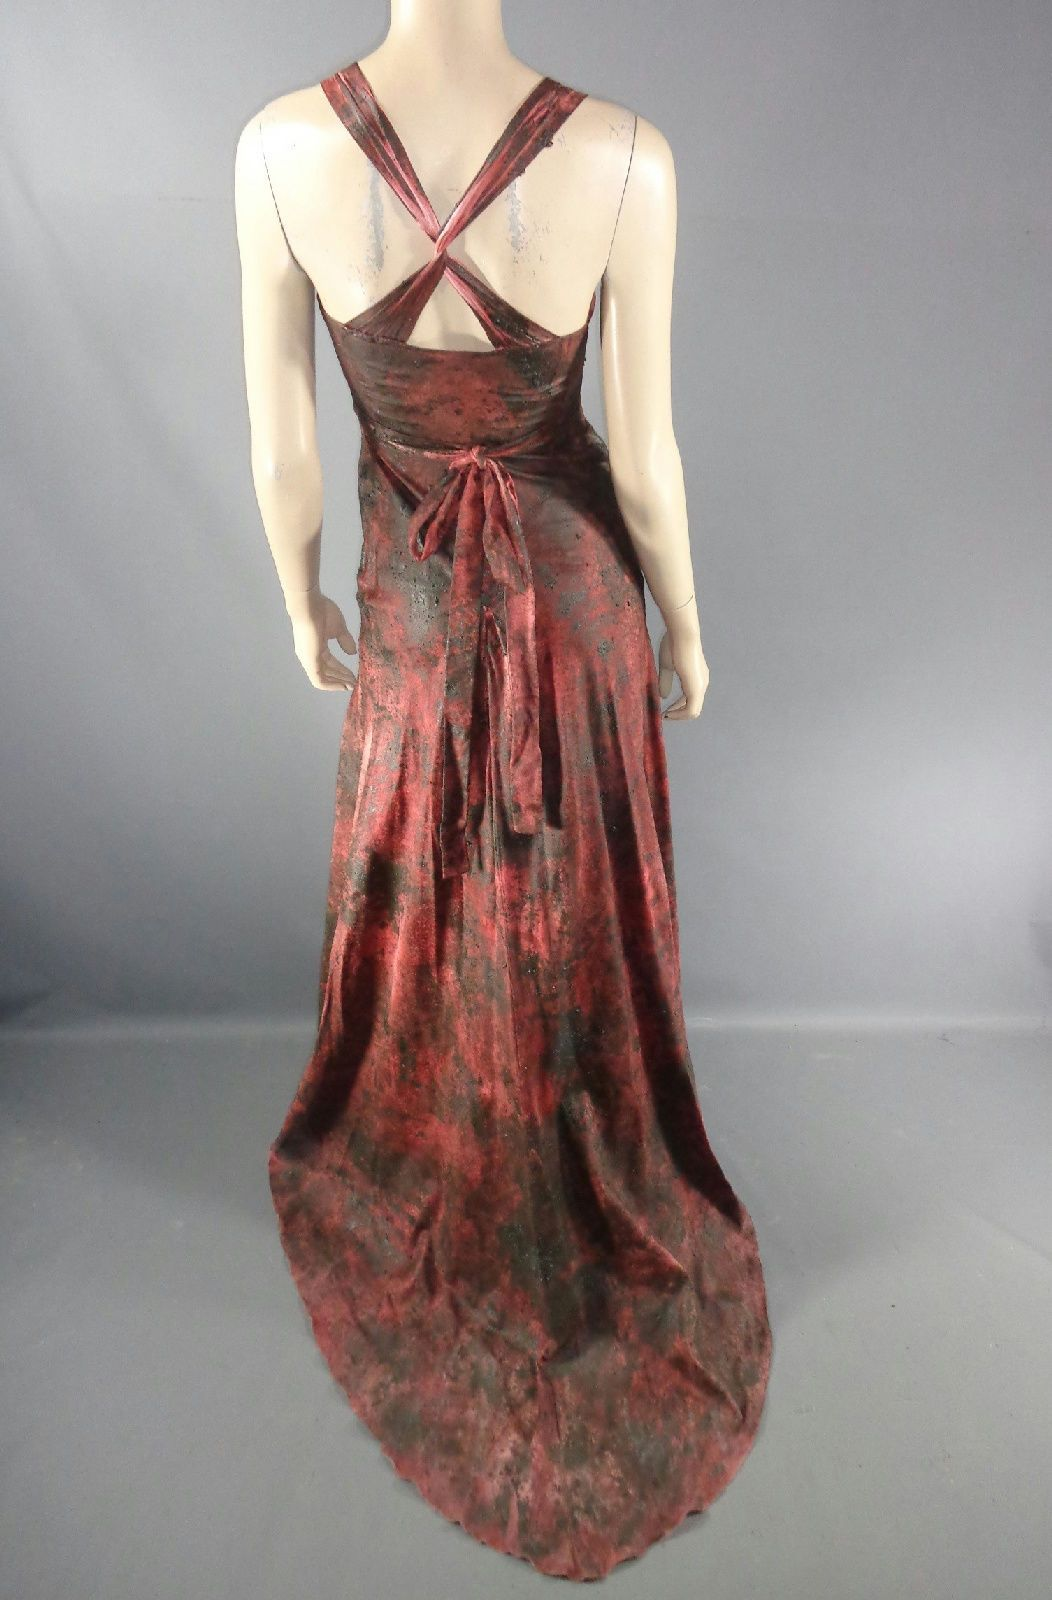 Carrie White Prom Dress Dirty Back | Horror Movies | Pinterest ...